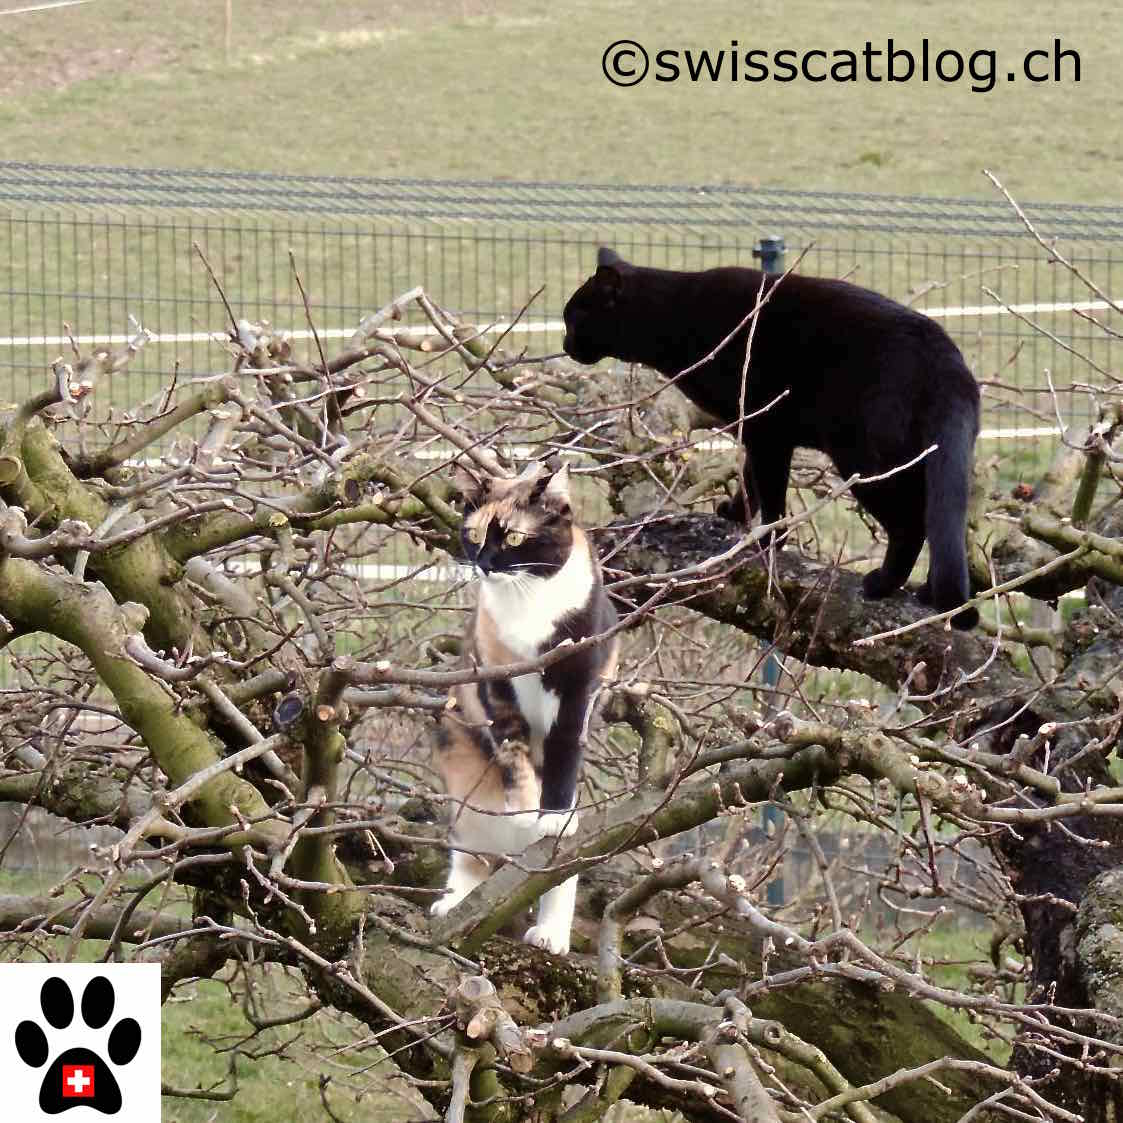 Recinzioni Per Gatti Giardino How To Enclose My Garden So That My Cats Can Safely Go Out